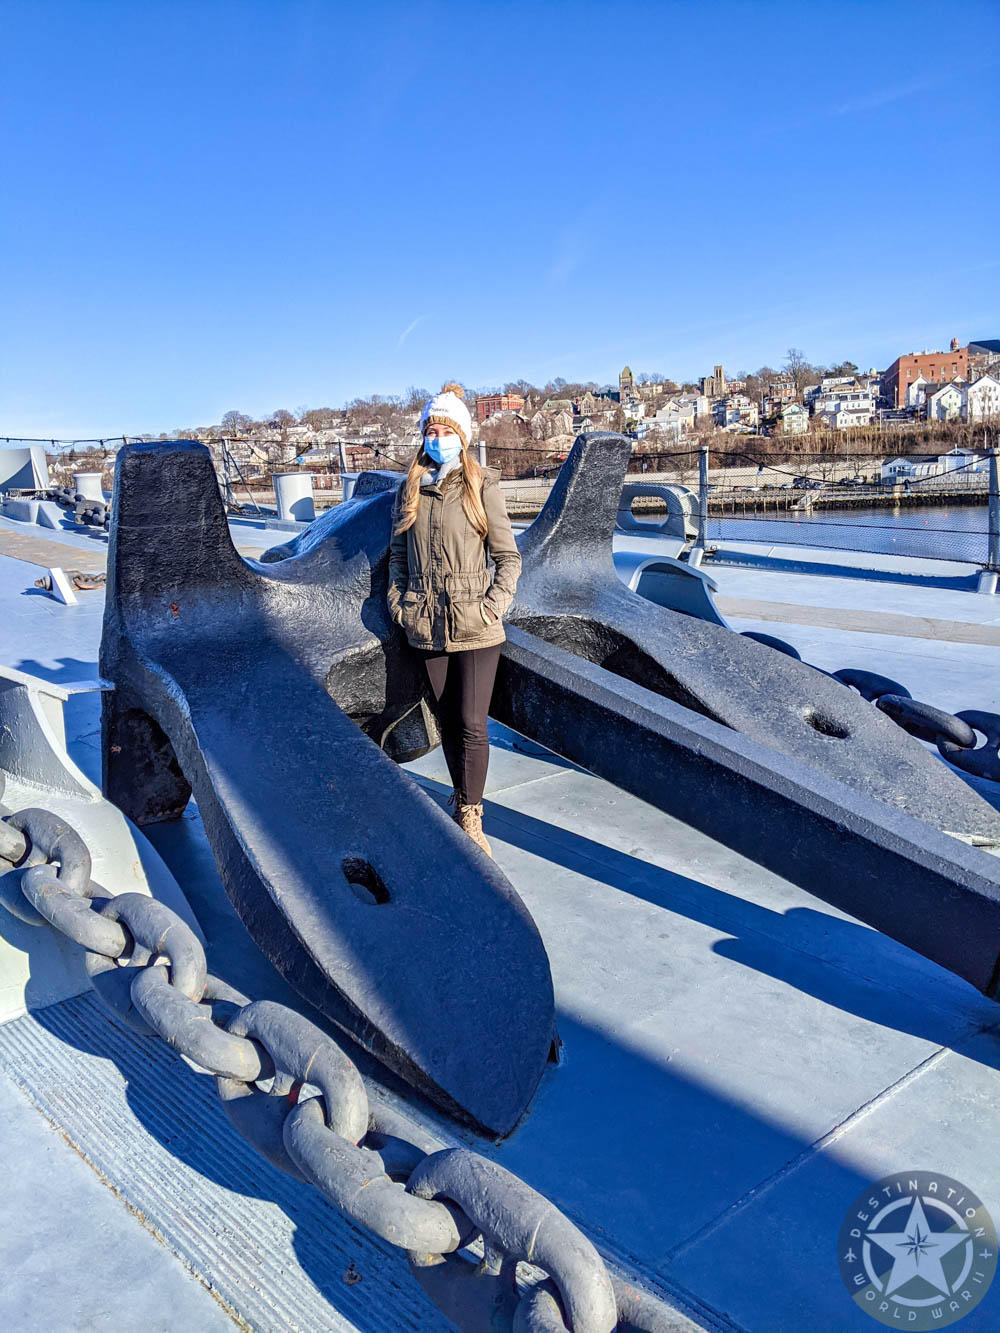 Big anchor on the USS Massachusetts | 7 Reasons U.S. Battleship Museums are the Best Museums | USS Massachusetts, Battleship Cove, Fall River, Massachusetts